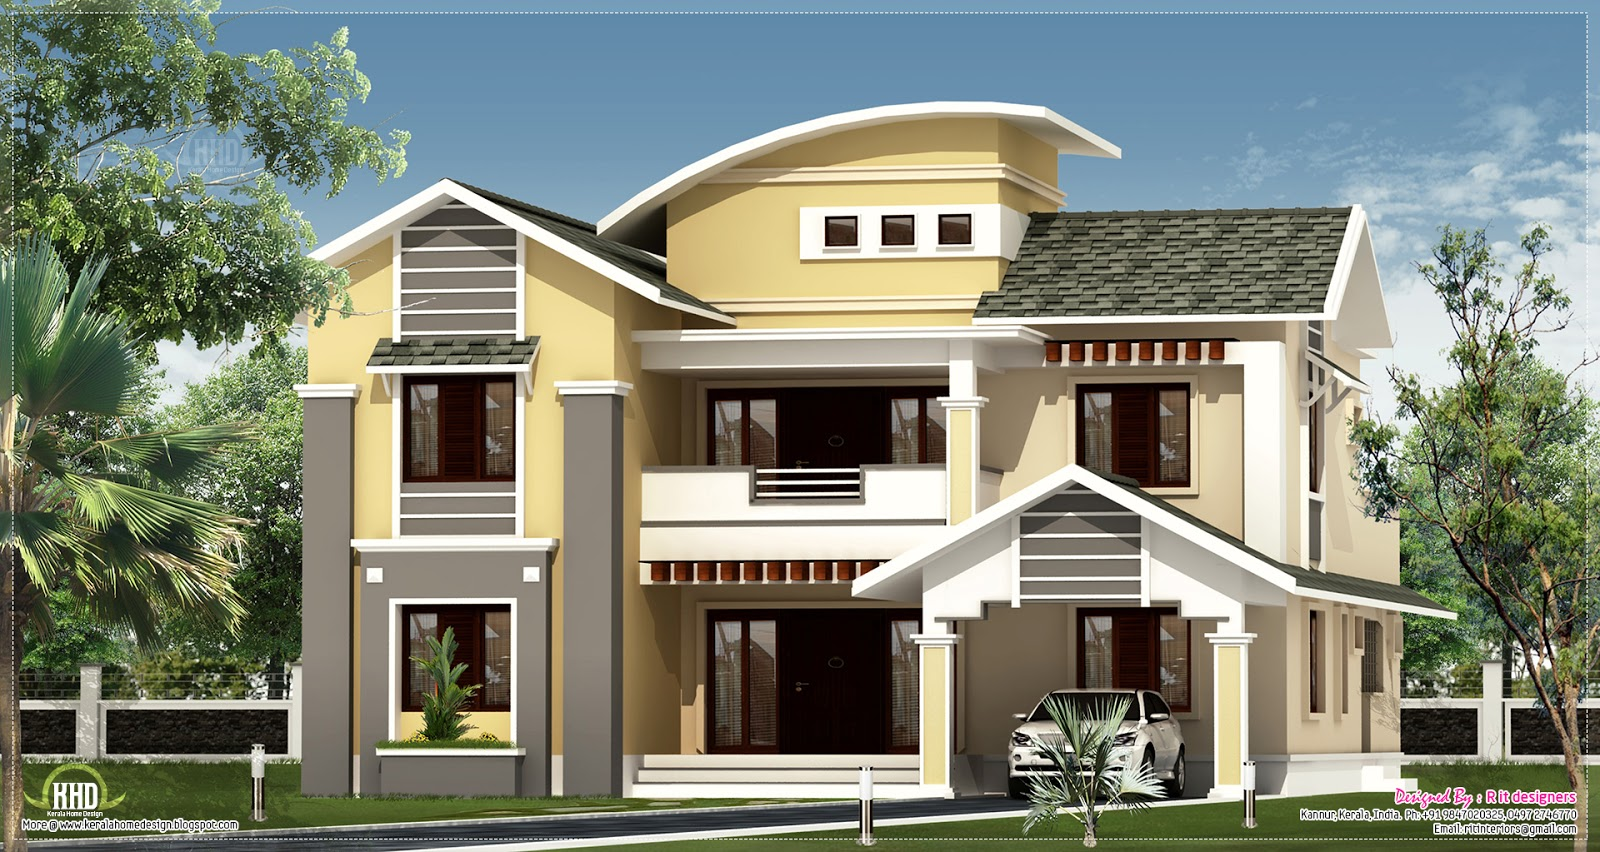 3000 Home Design From Kannur Kerala House Design Plans